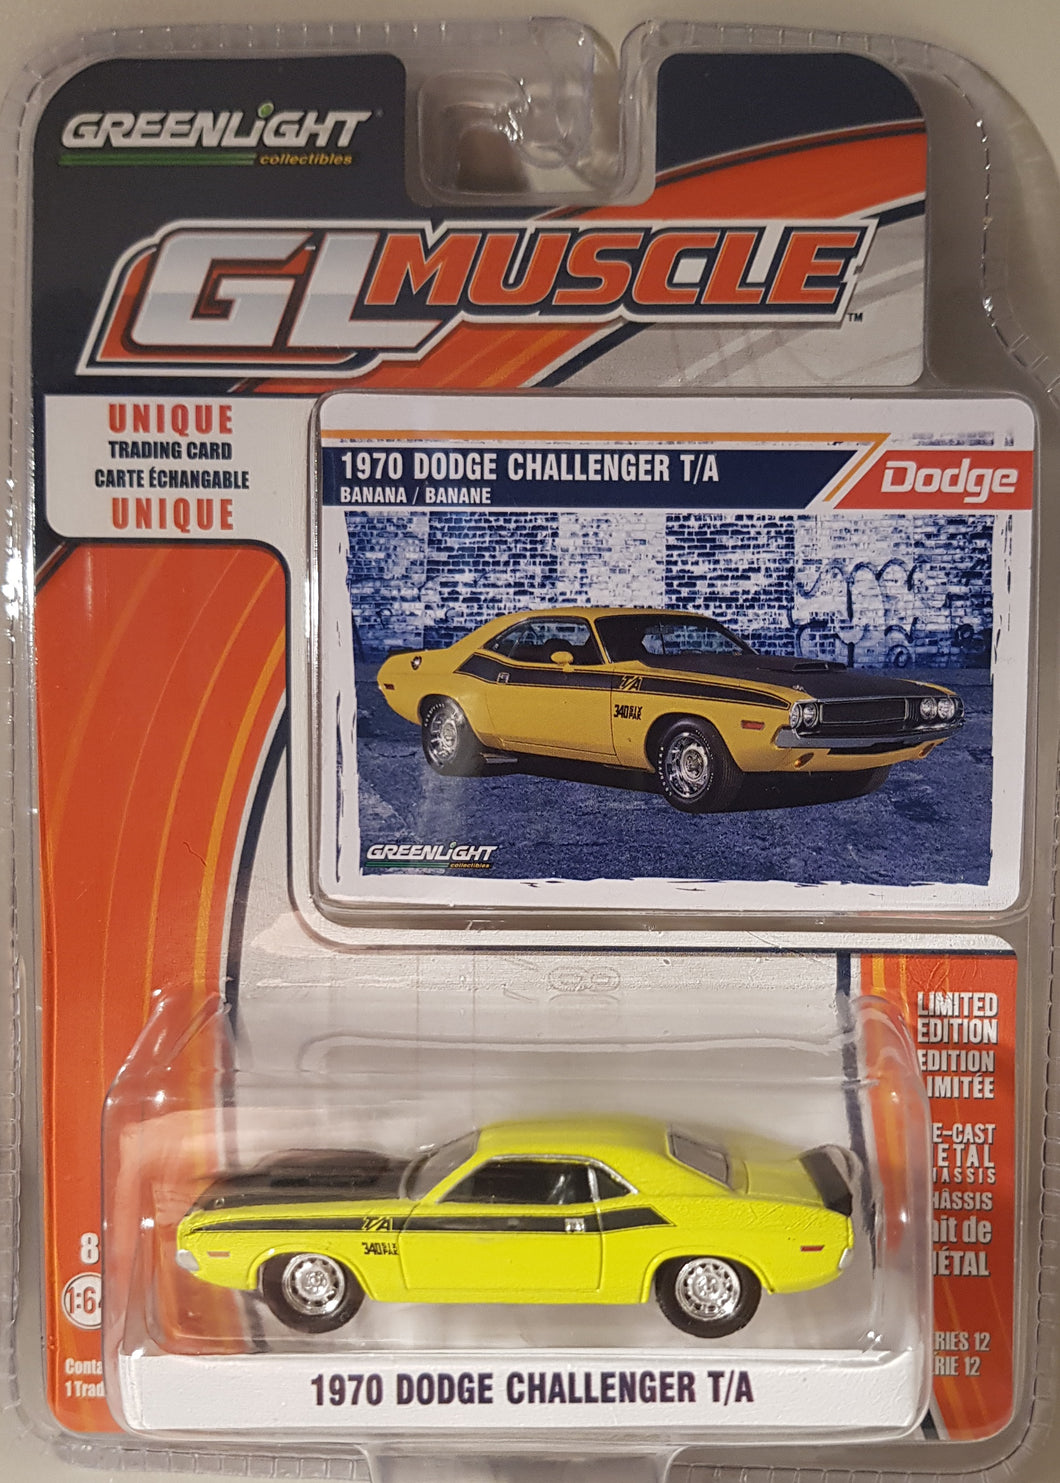 1970 Dodge Challenger T/A, Greenlight GL Muscle, 1:64 Diecast Vehicle